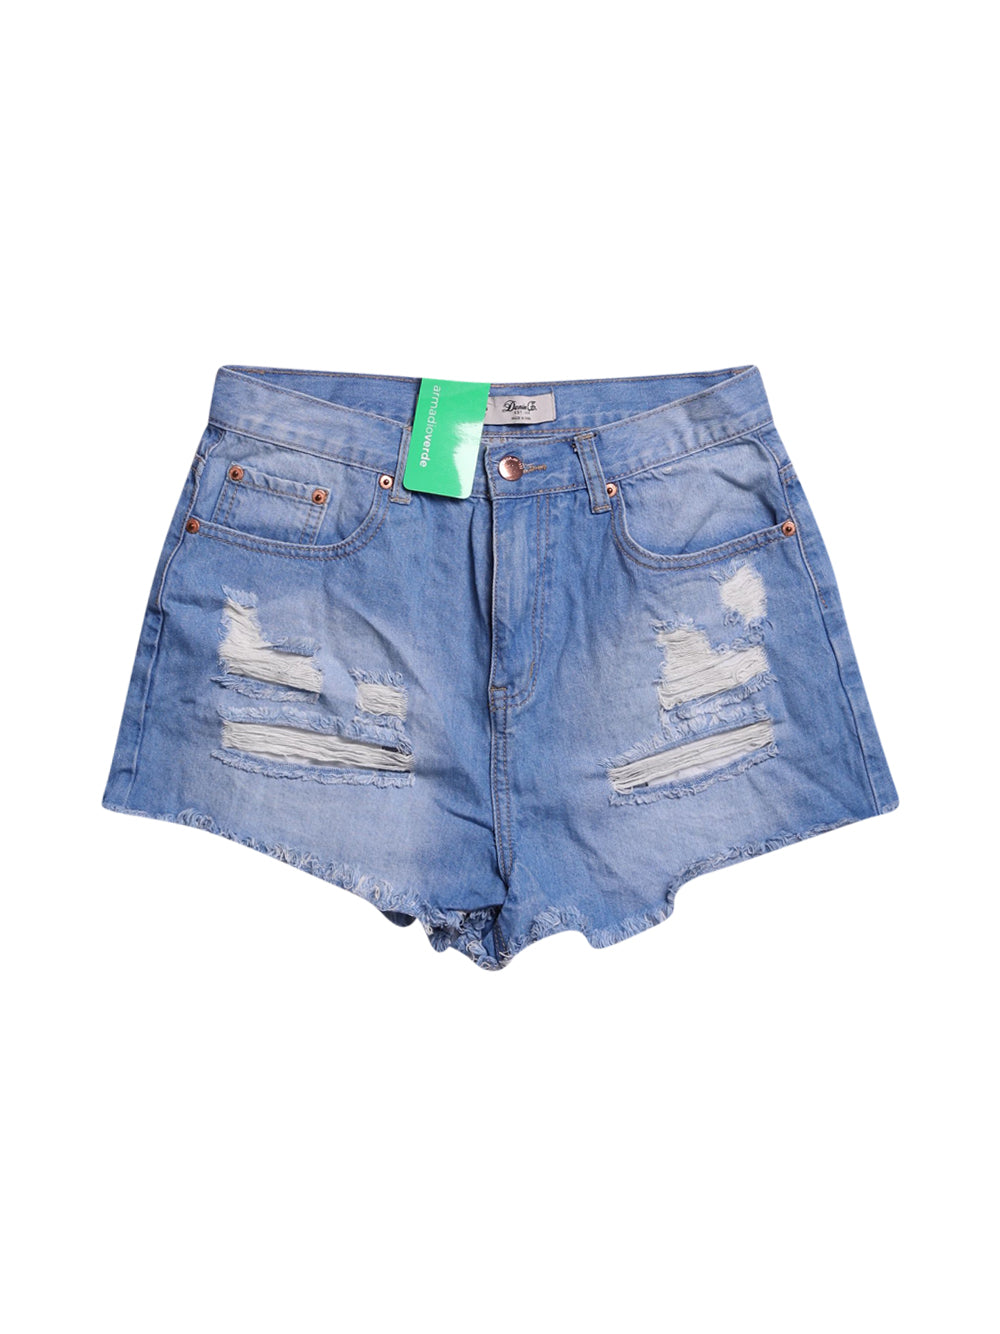 Front photo of Preloved denim&co Blue Woman's shorts - size 12/L